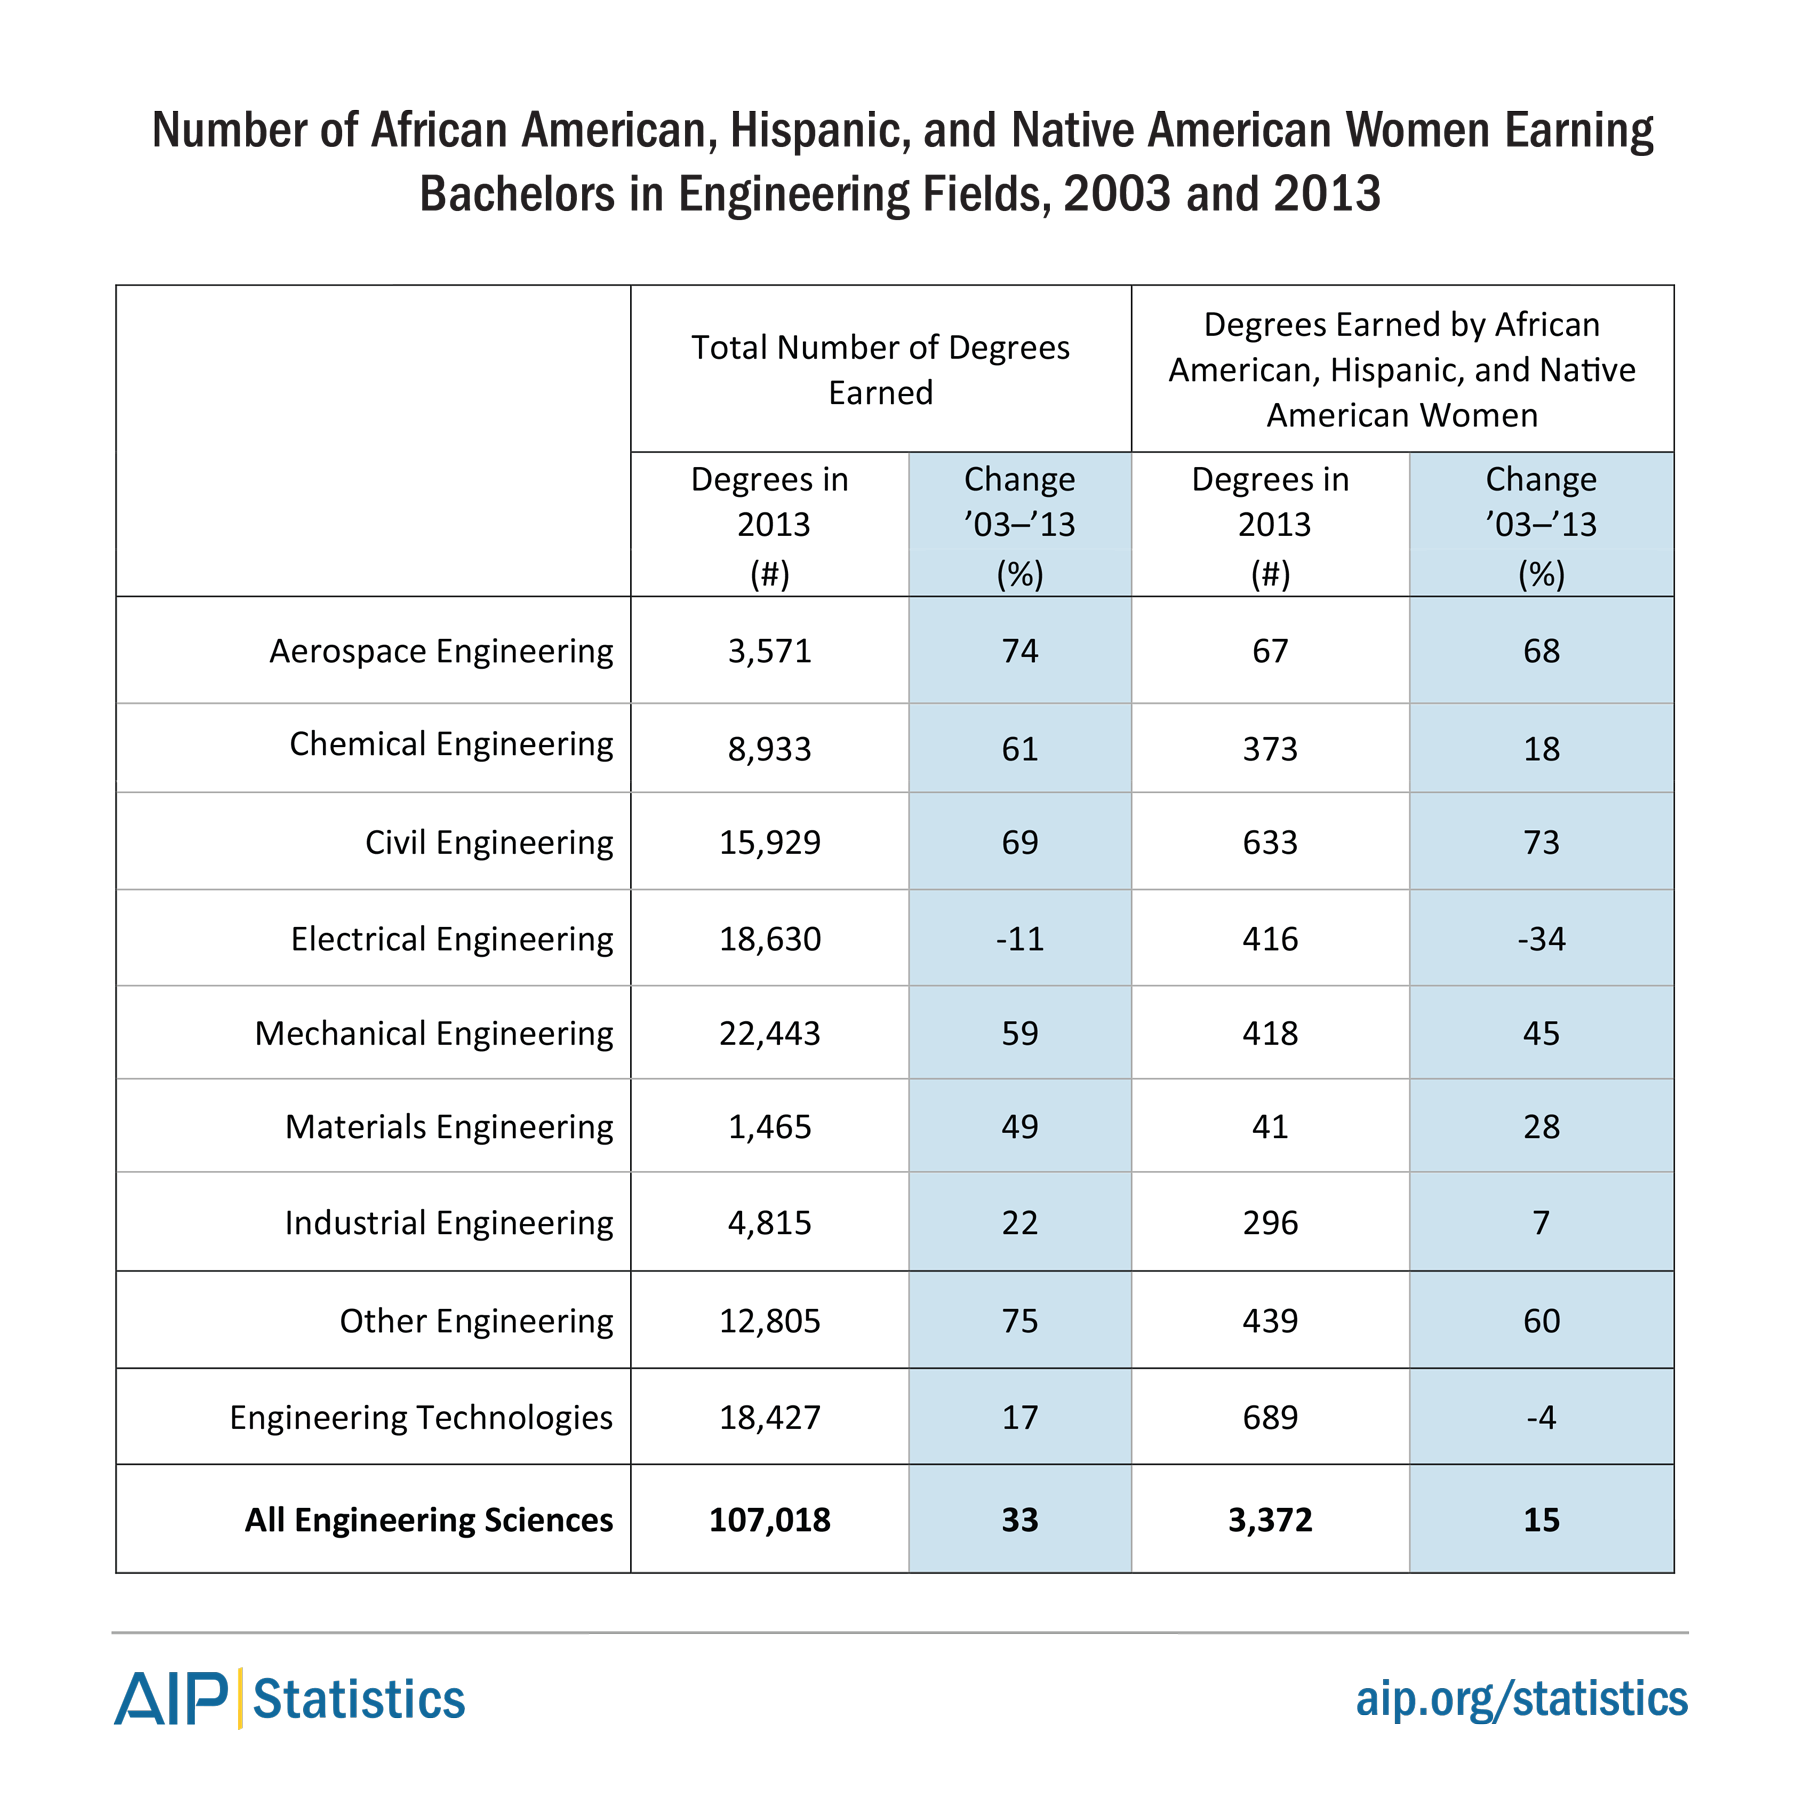 Number of African American, Hispanic, and Native American Women Earning Bachelors in Engineering Fields, 2003 and 2013